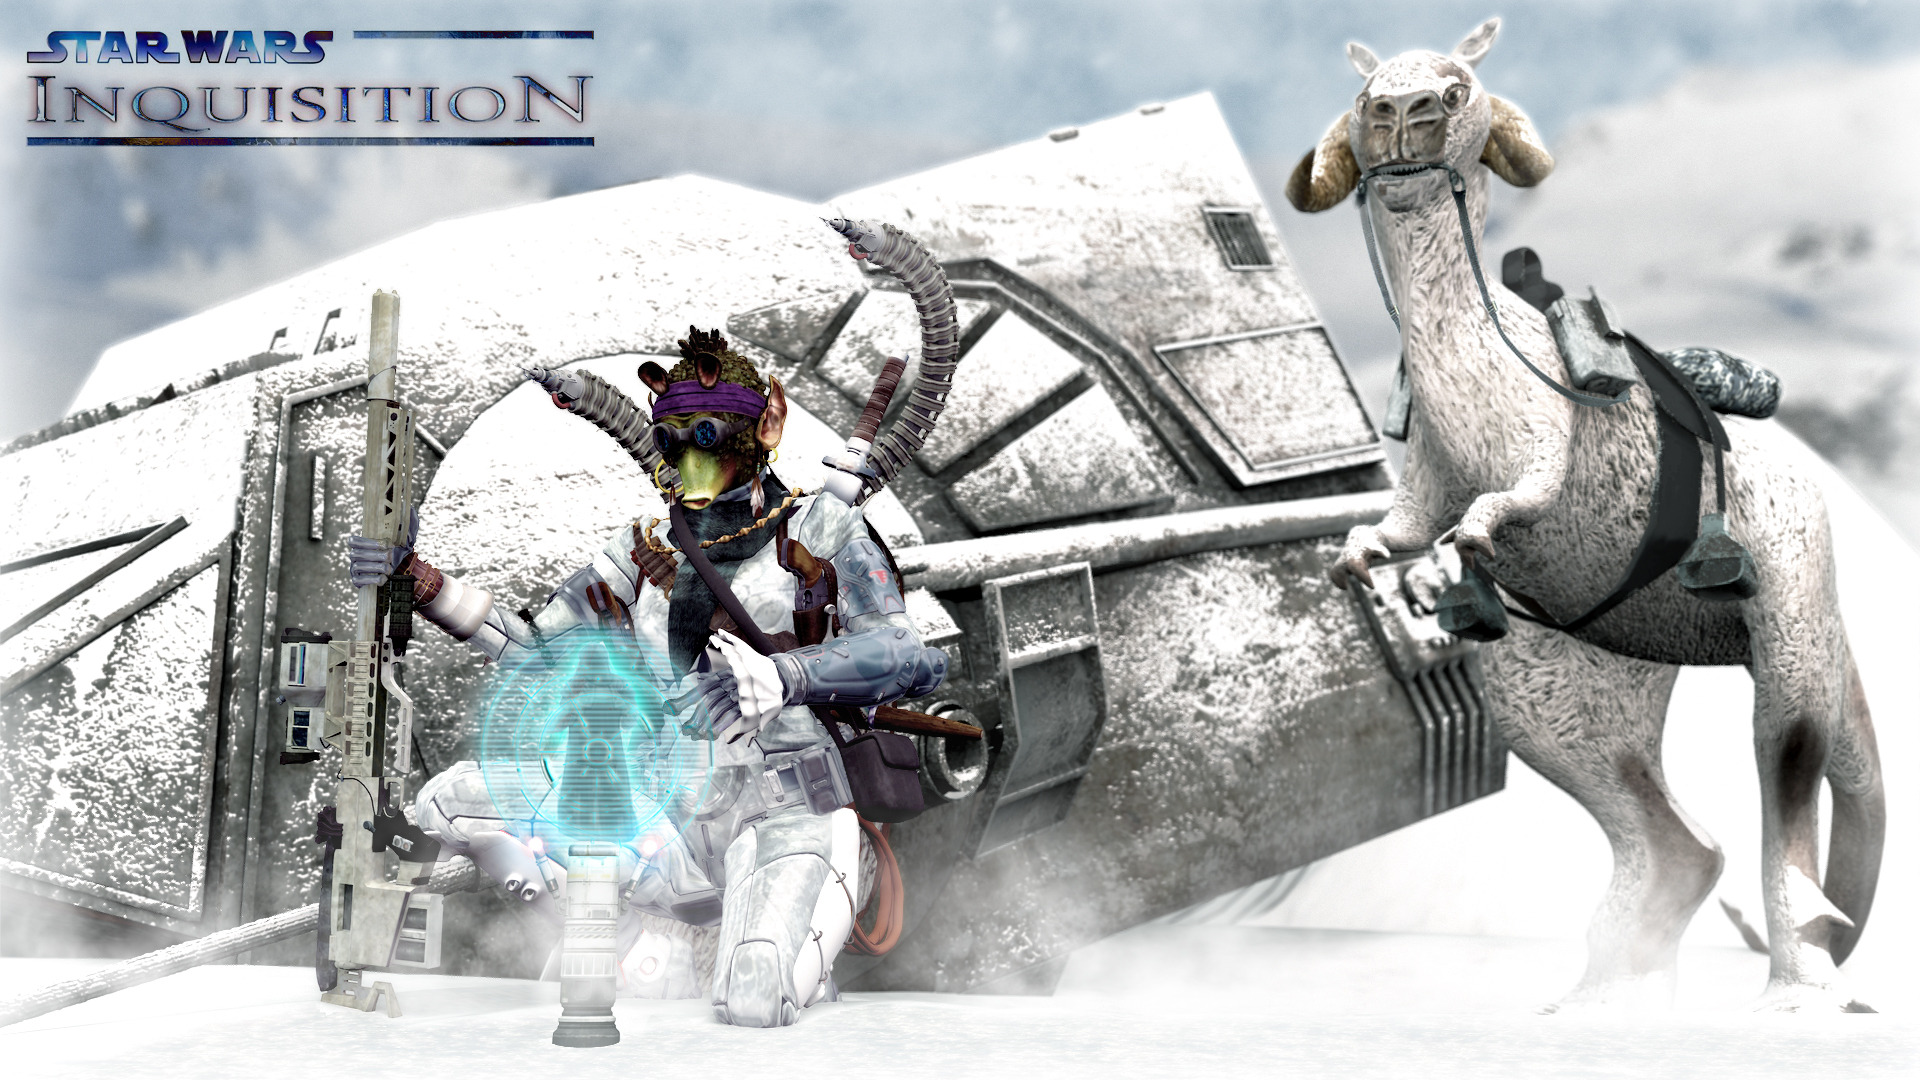 Rodian Hunting on Hoth